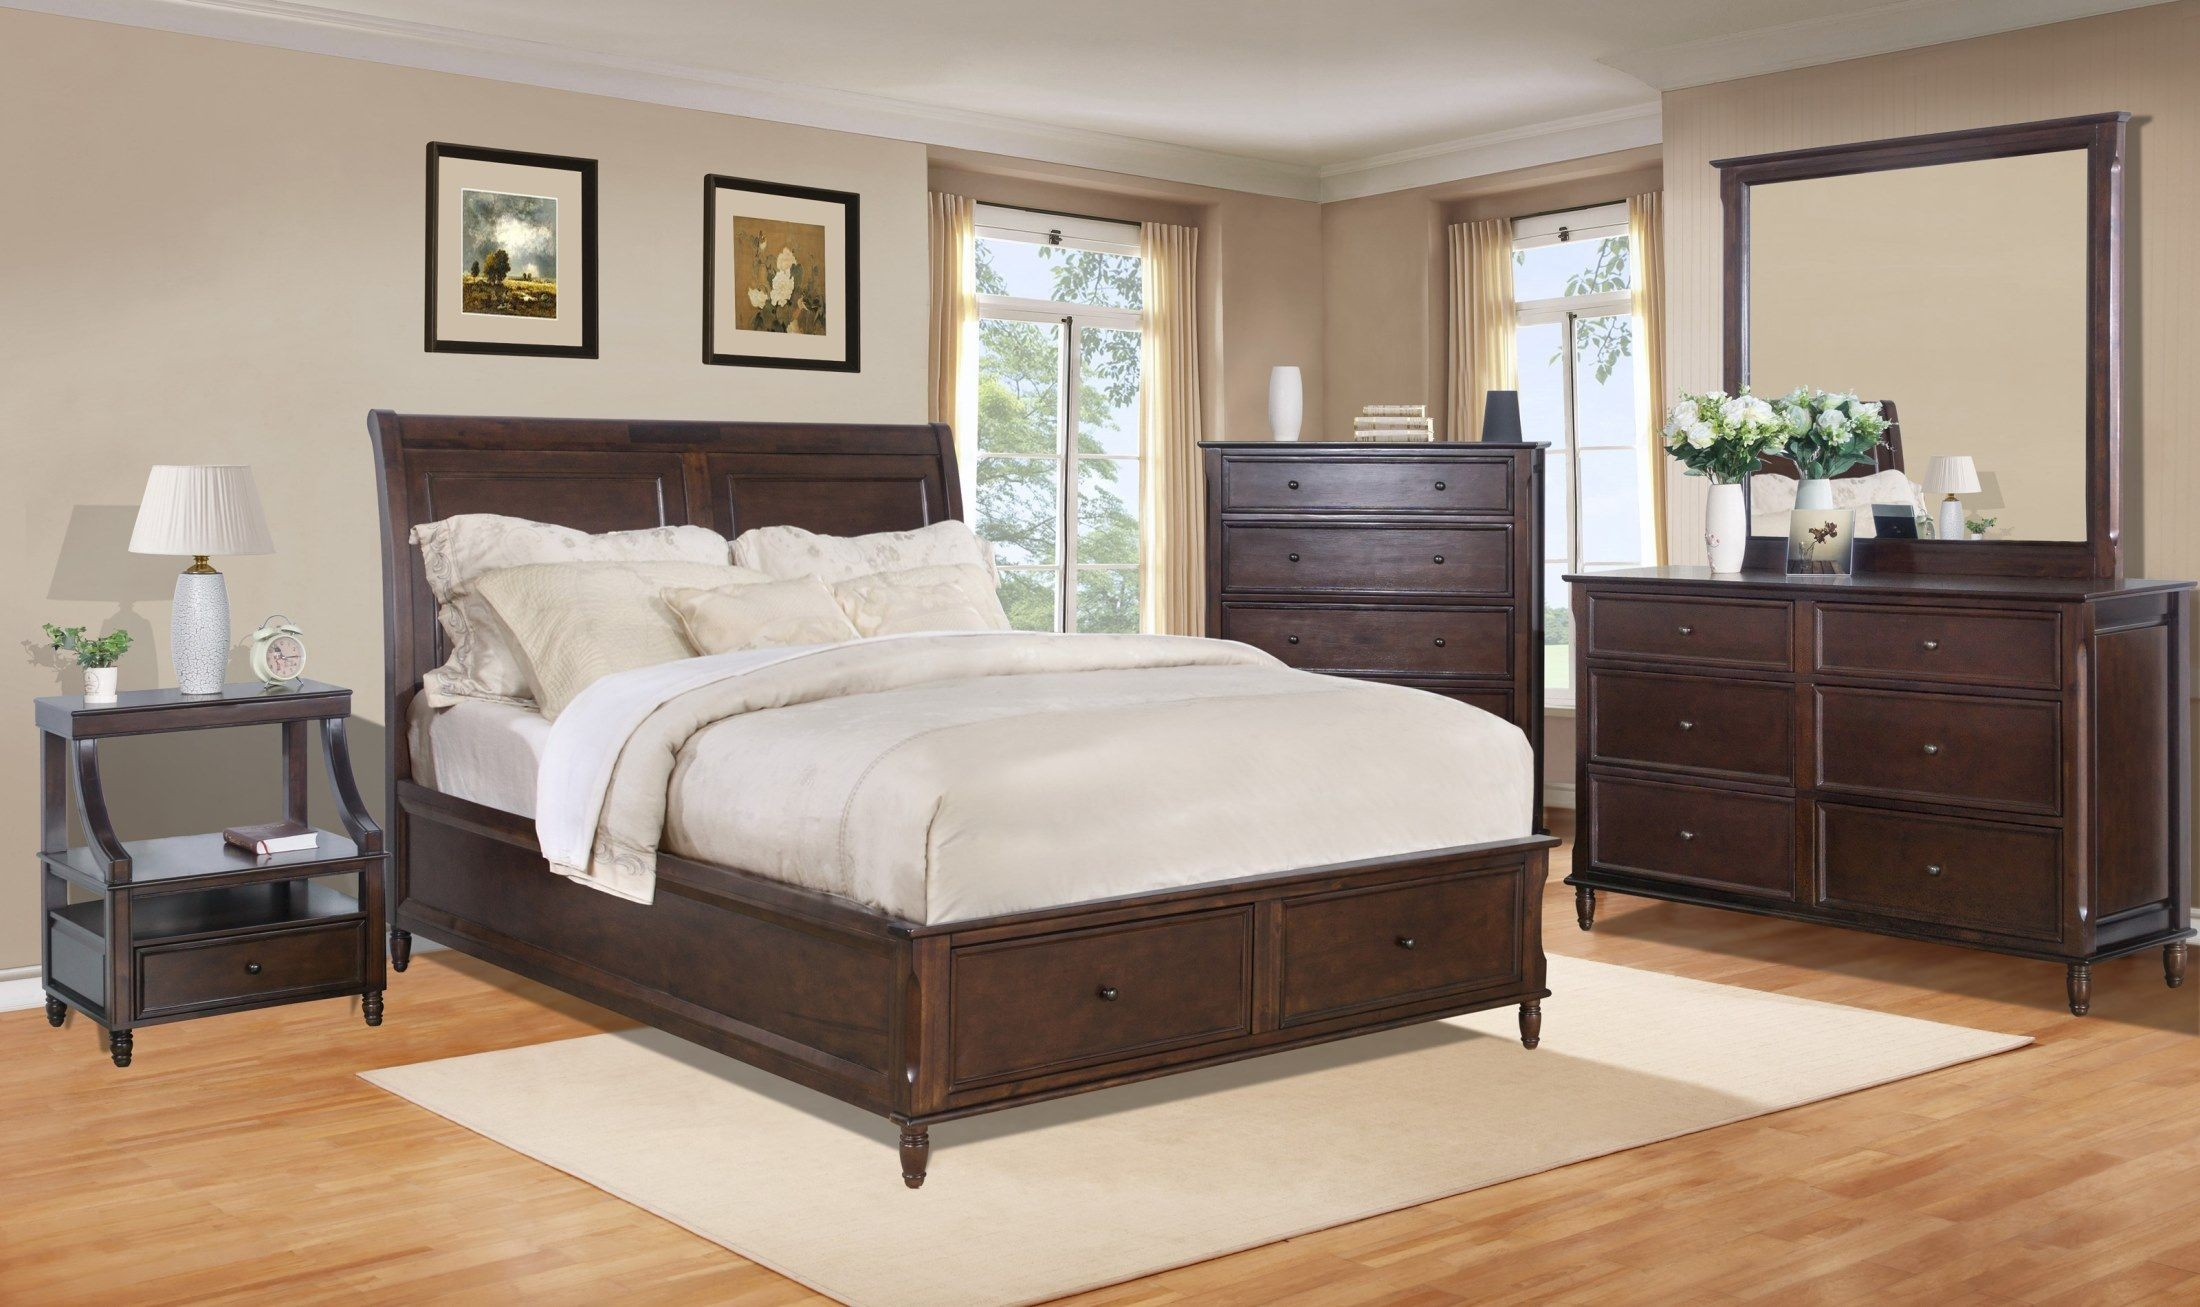 Avignon Birch Cherry Storage Bedroom Set from Jofran | Coleman ...